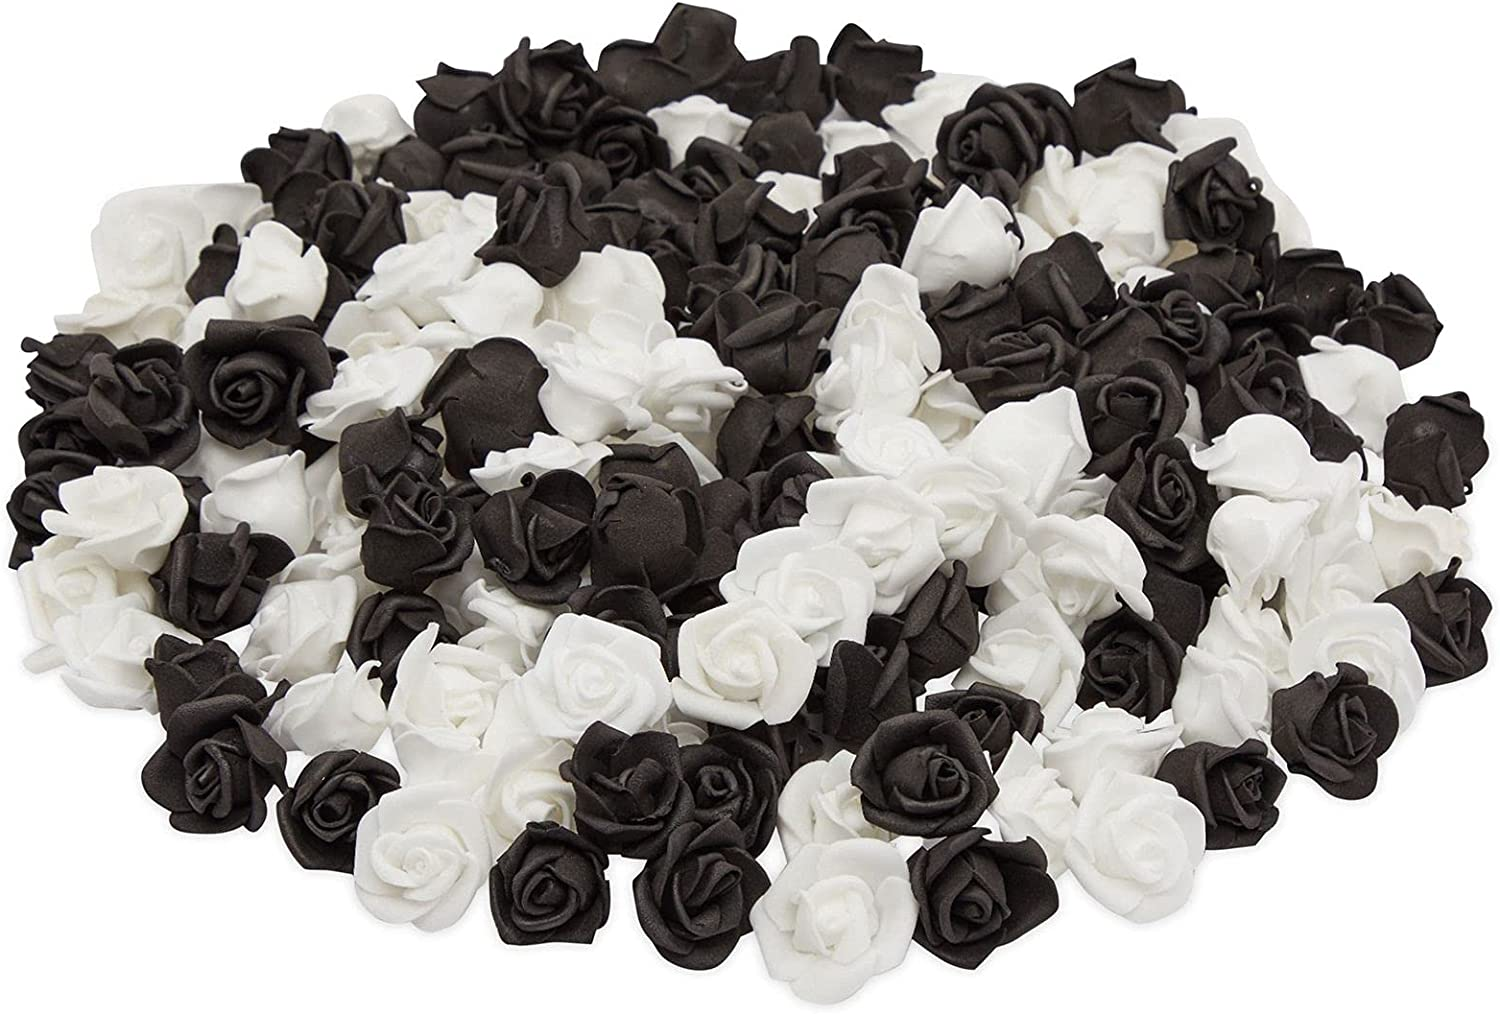 Mini Artificial Roses, 1-in Faux Flower Heads for Crafts, Decor (Black, White, 200 Pack)